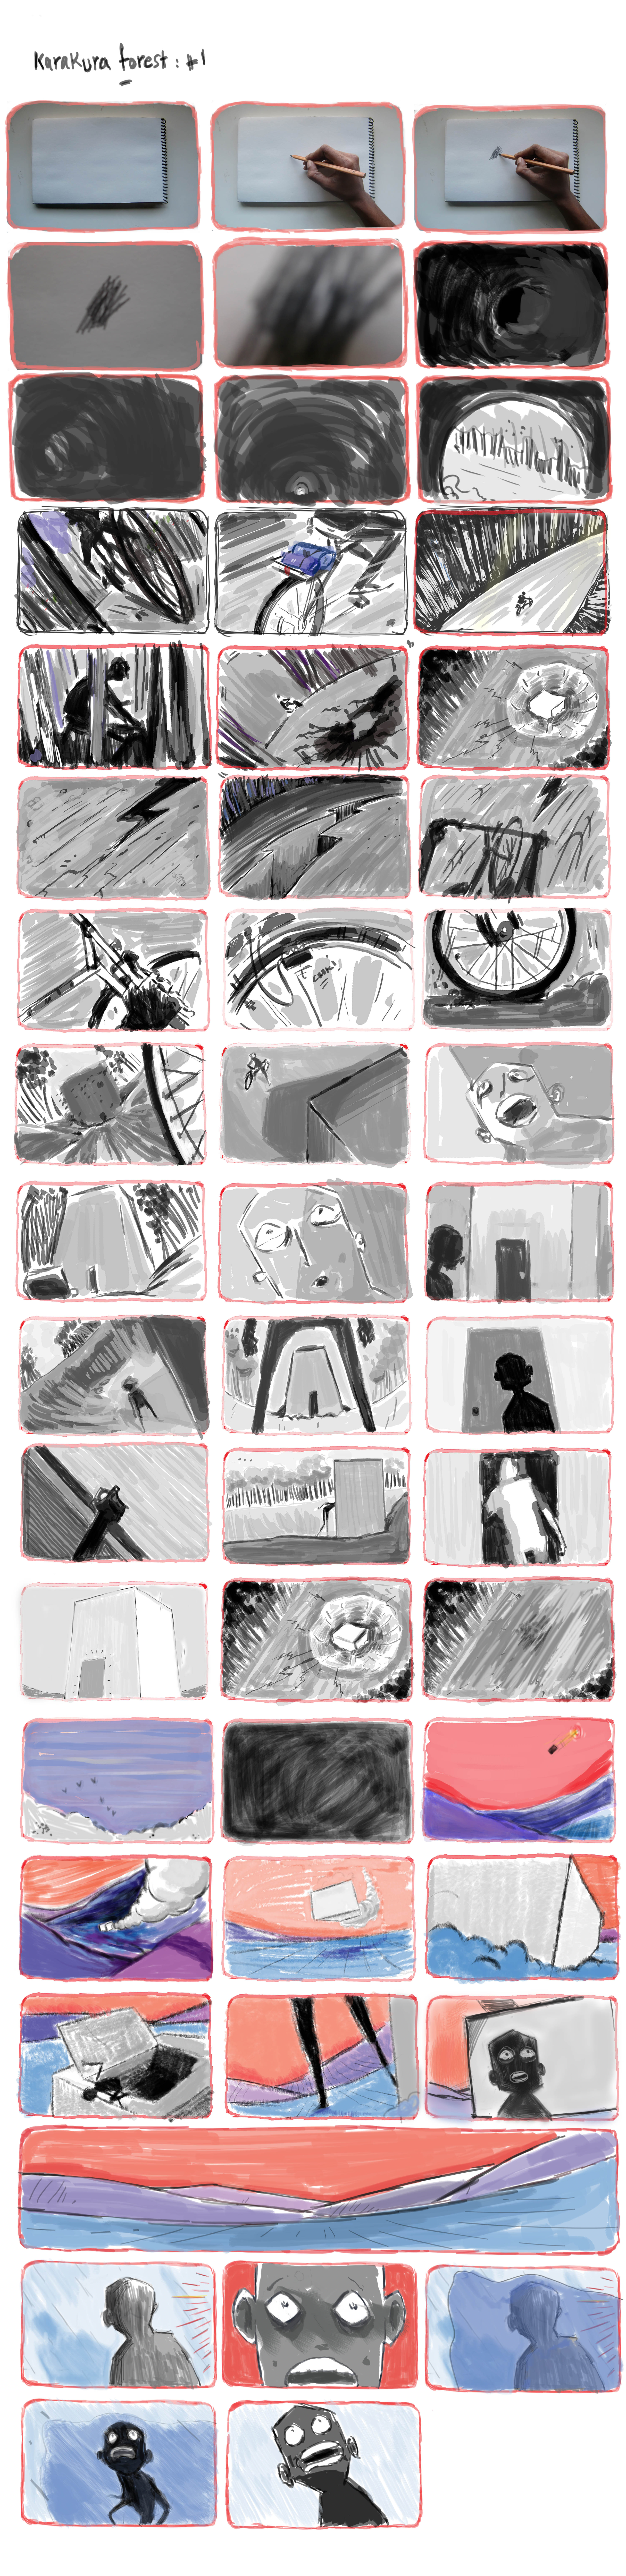 MJ rough storyboard